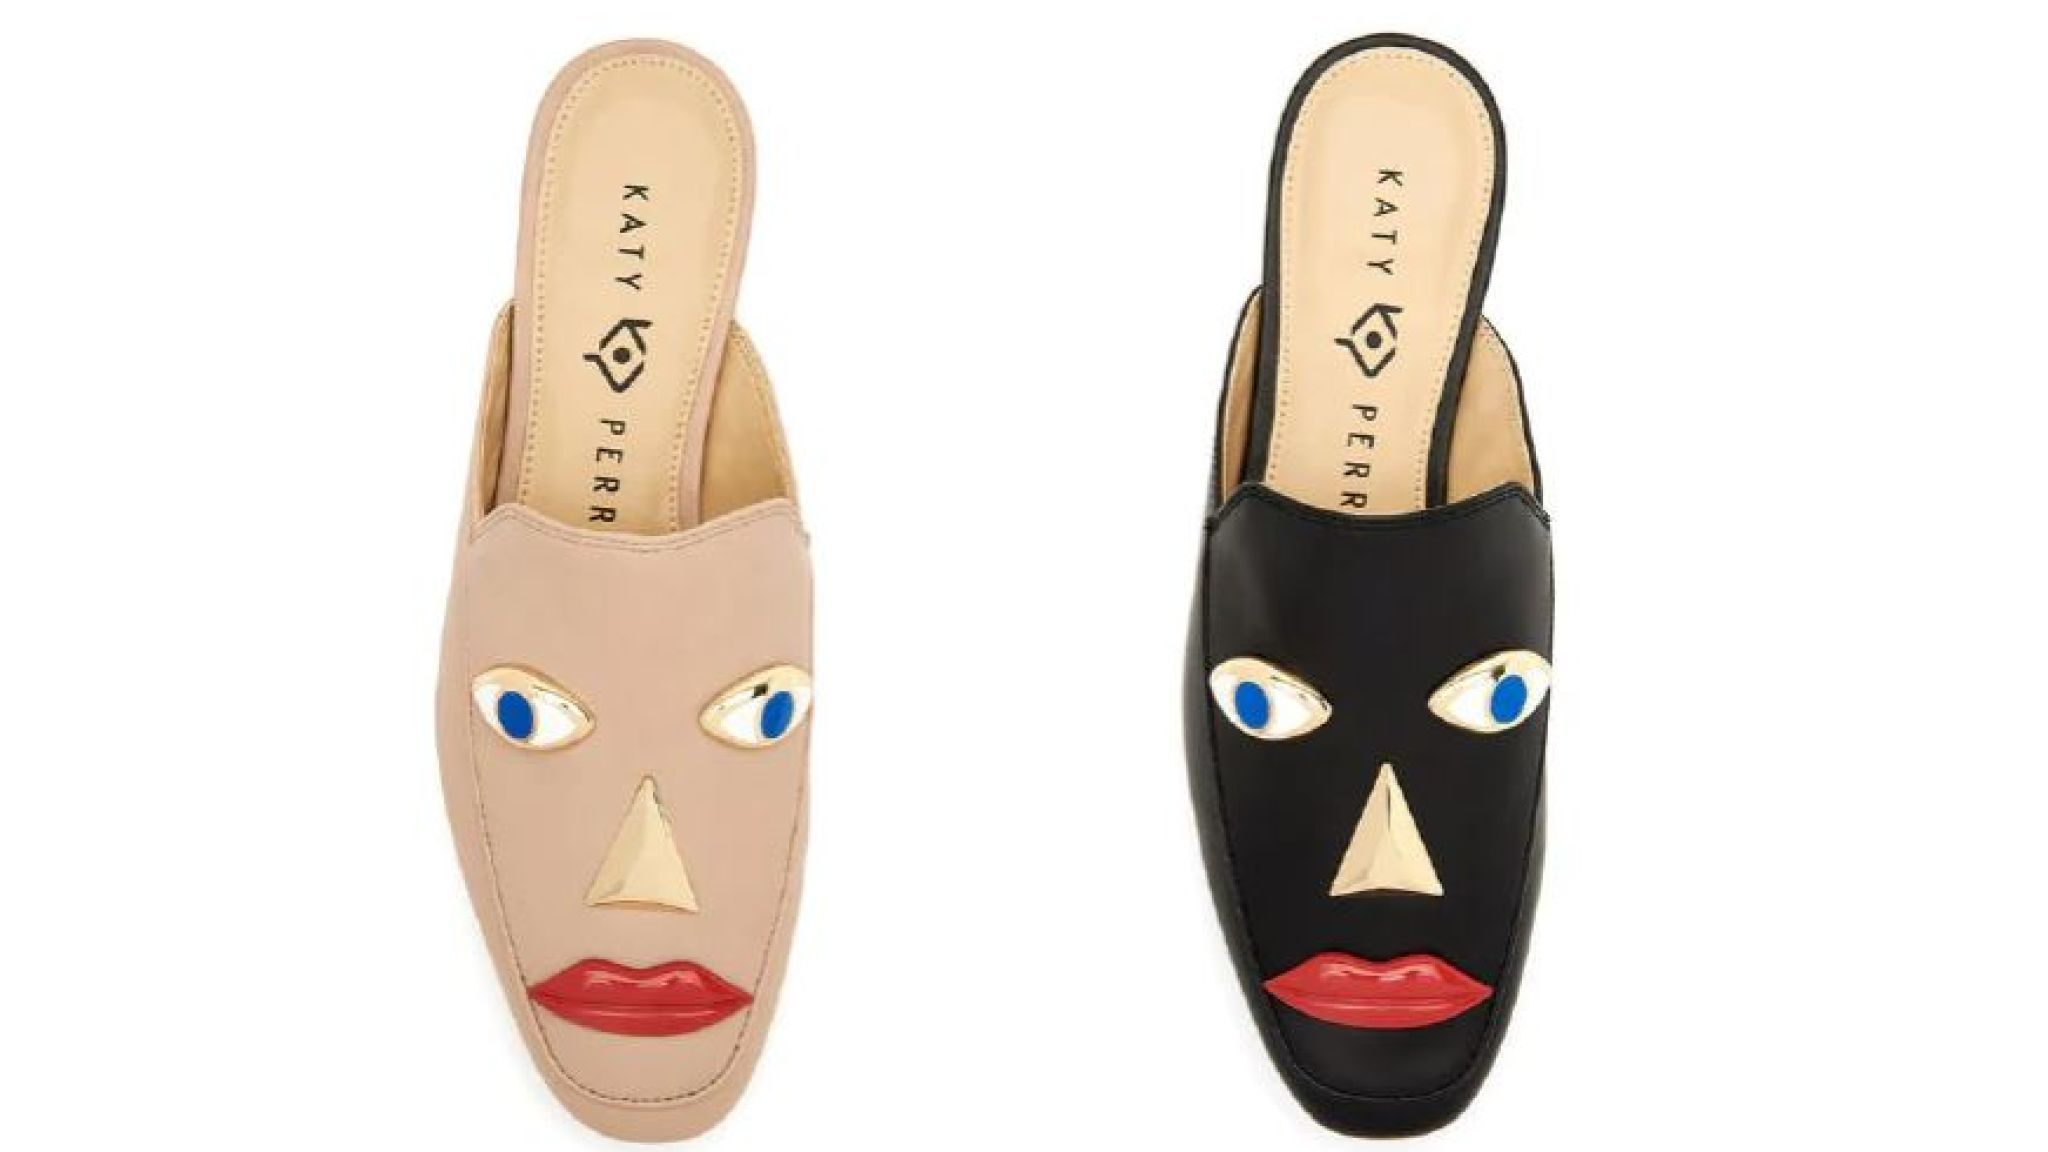 Katy Perry 'saddened' as her shoe line is taken off shelves for being racist 7